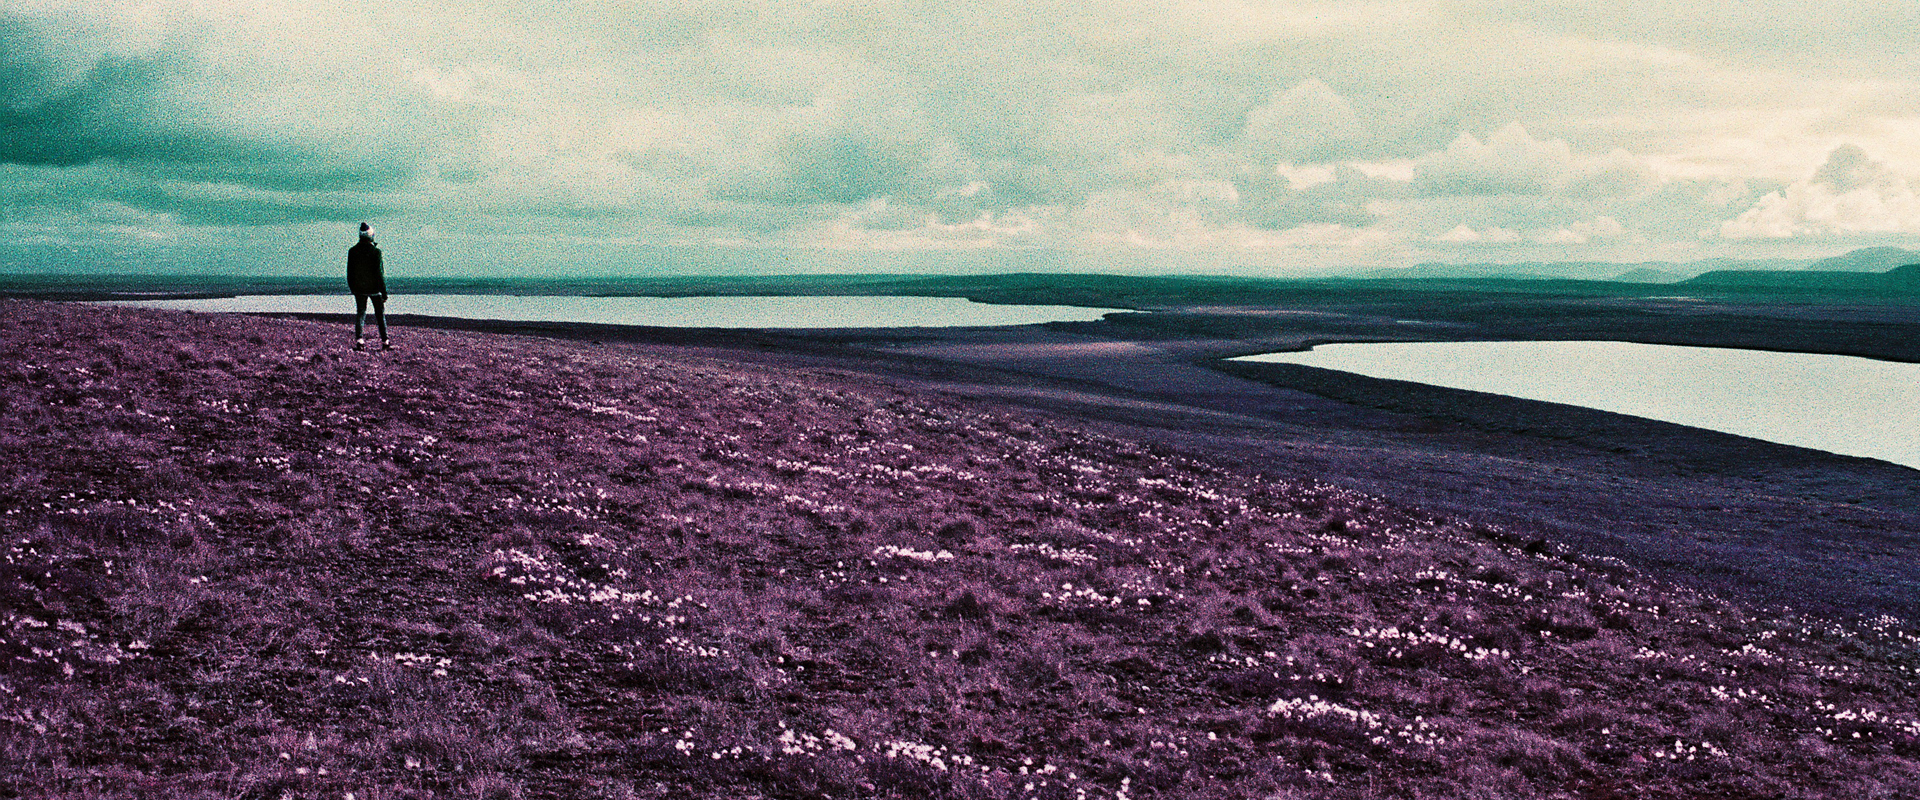 islande-hello-adventures-98-lomochrome-purple-ae1-wide